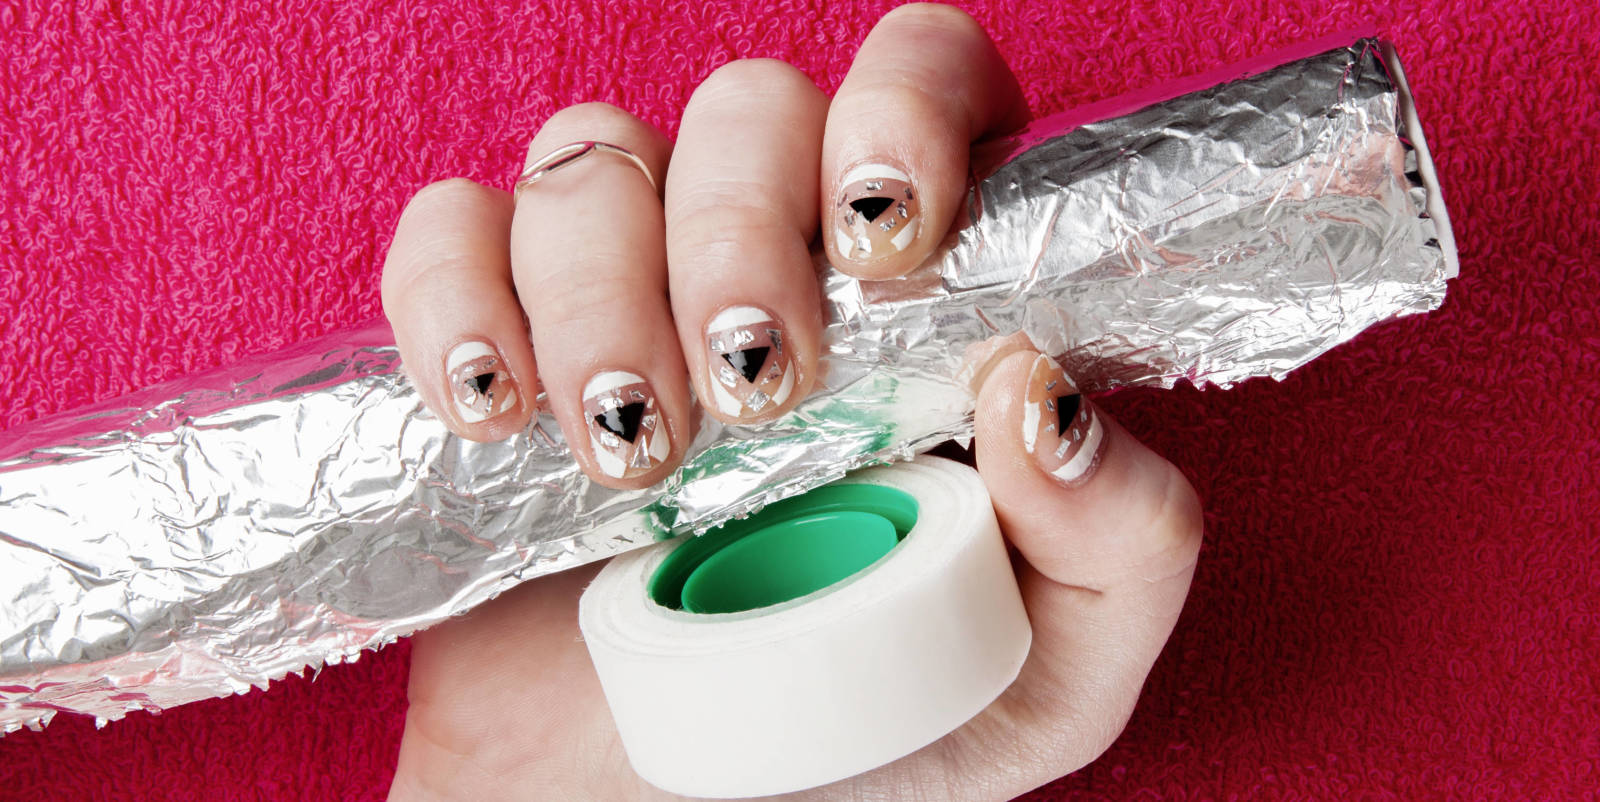 Scotch Tape Nail Art 3 Easy Designs Diy Nail Art Ideas Using